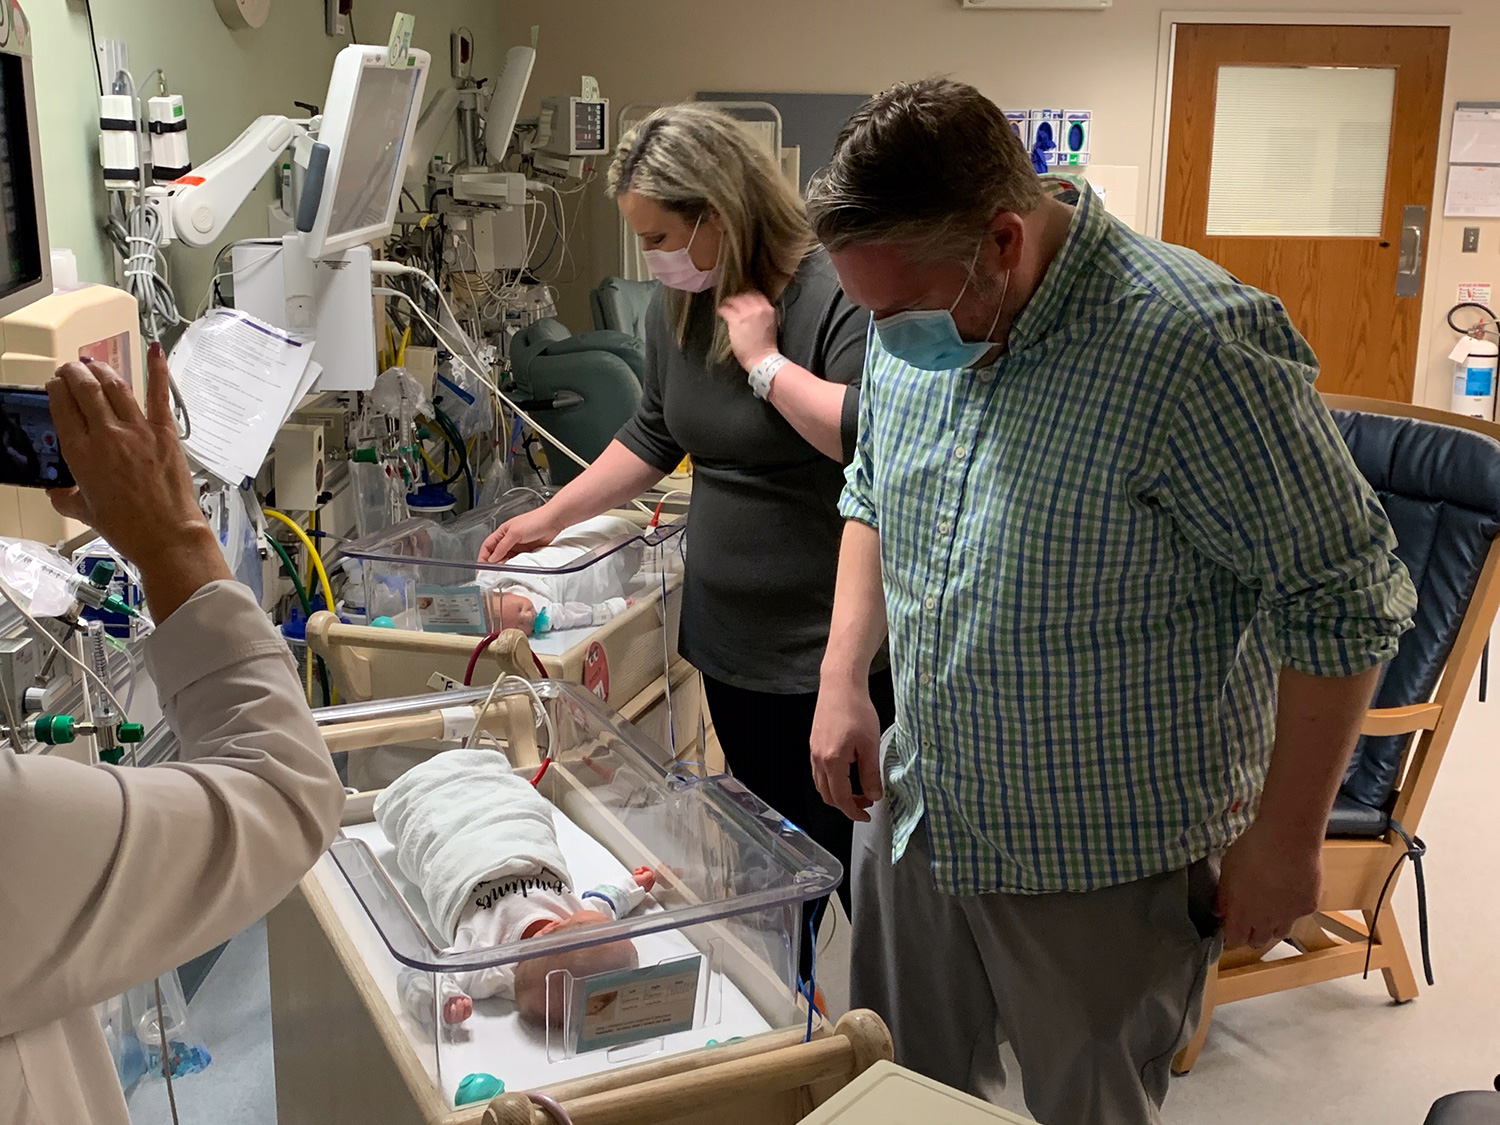 Parents who Both Had Coronavirus Hold Twin Sons for First Time Nearly 3 Weeks After Birth